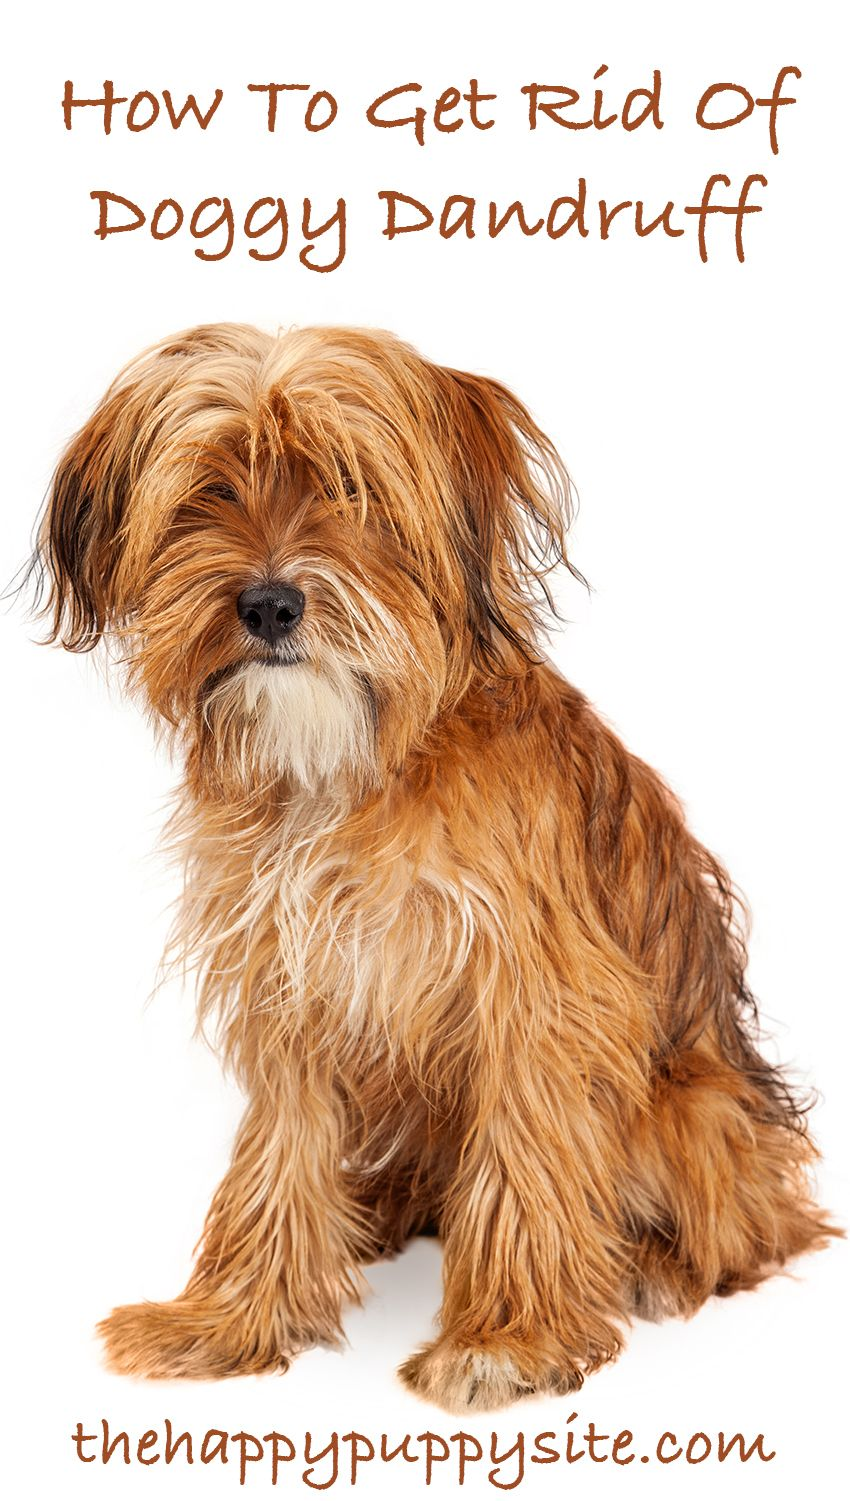 How To Get Rid Of Dog Dandruff A Guide To Causes And Treatments Dog Dandruff Puppy Dandruff Dog Dry Skin